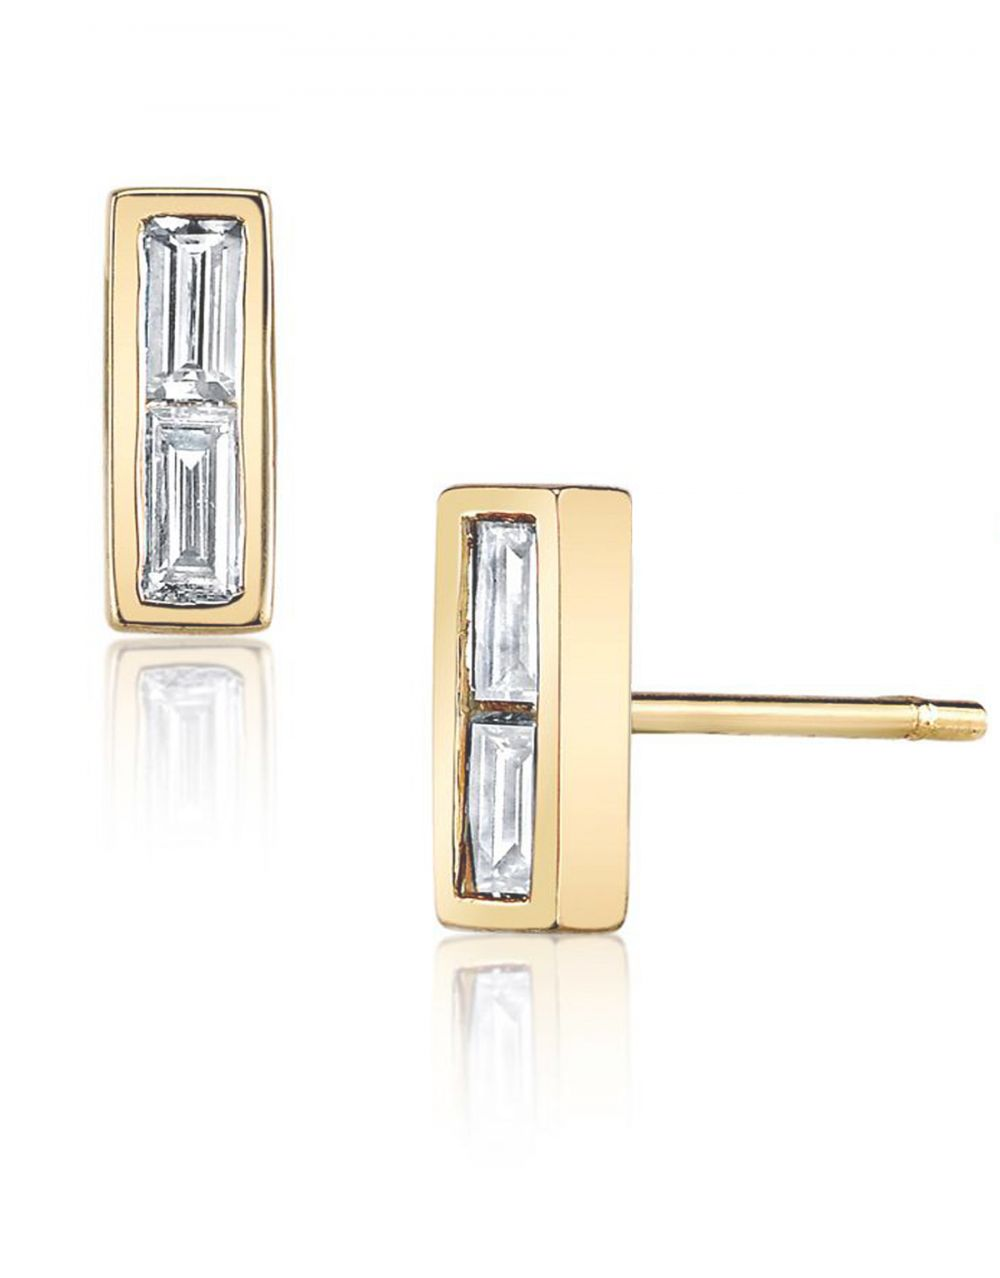 Double Diamond Baguette Stud<br /><i><small>14K Yellow Gold with White Diamonds</small></i><br />